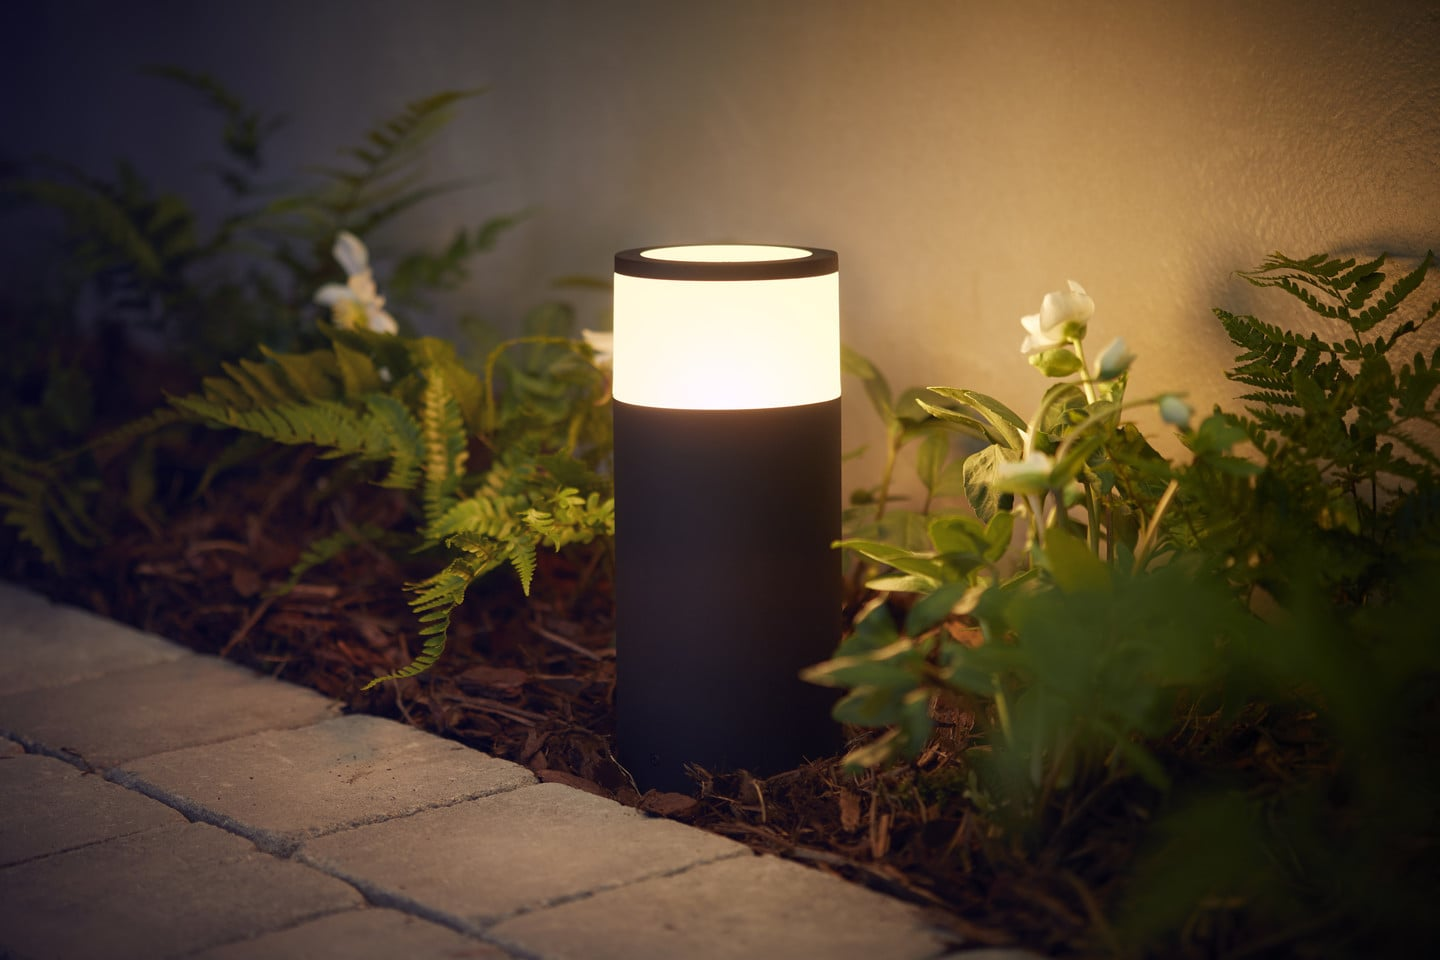 Phillips Expands 'Hue' Smart Lights Range To Outdoors